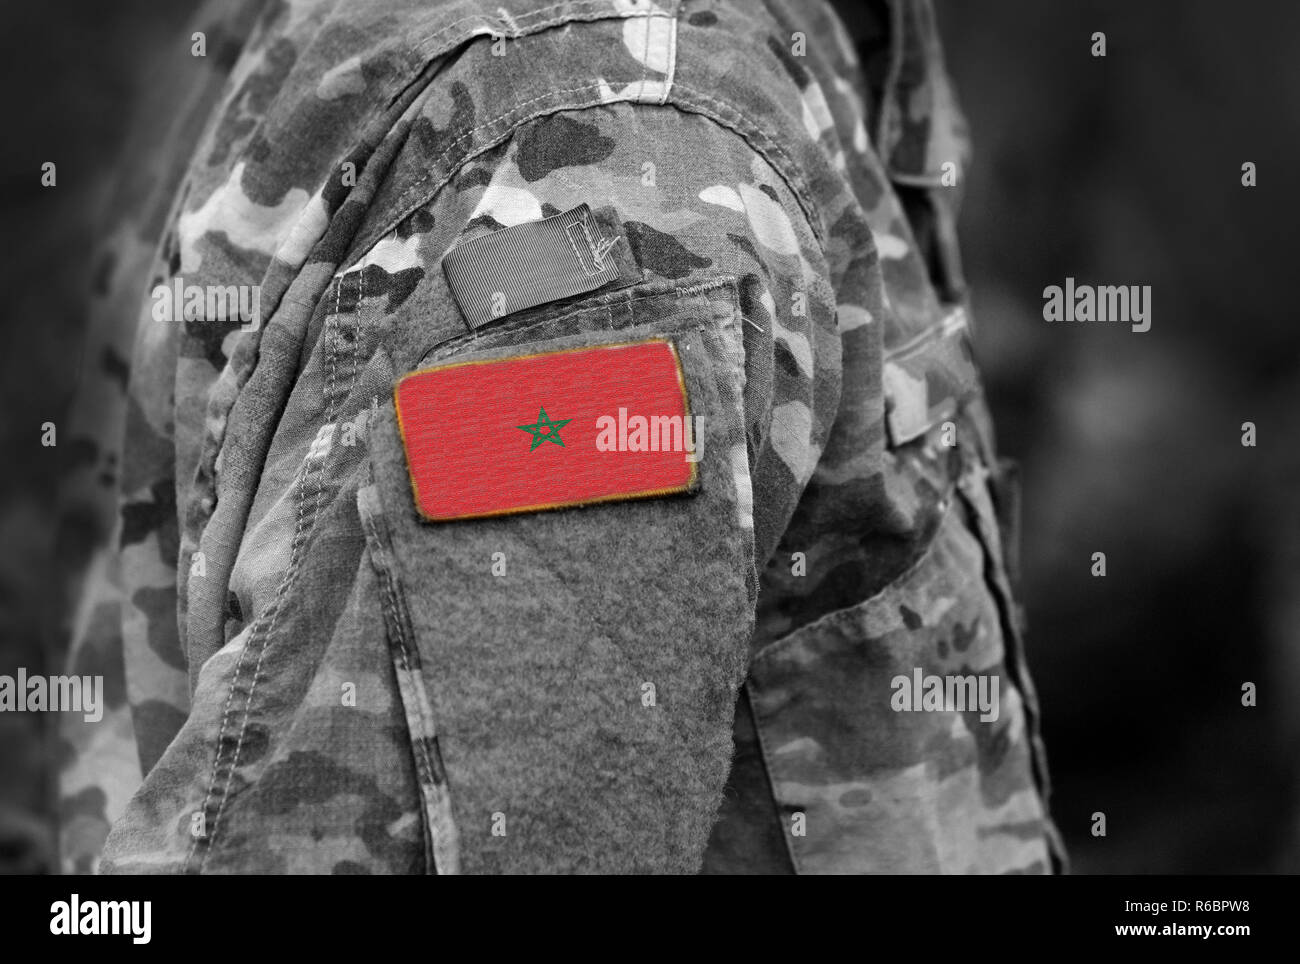 Flag of Morocco on soldiers arm. Morocco flag on military uniform. Army, troops, Africa (collage). - Stock Image